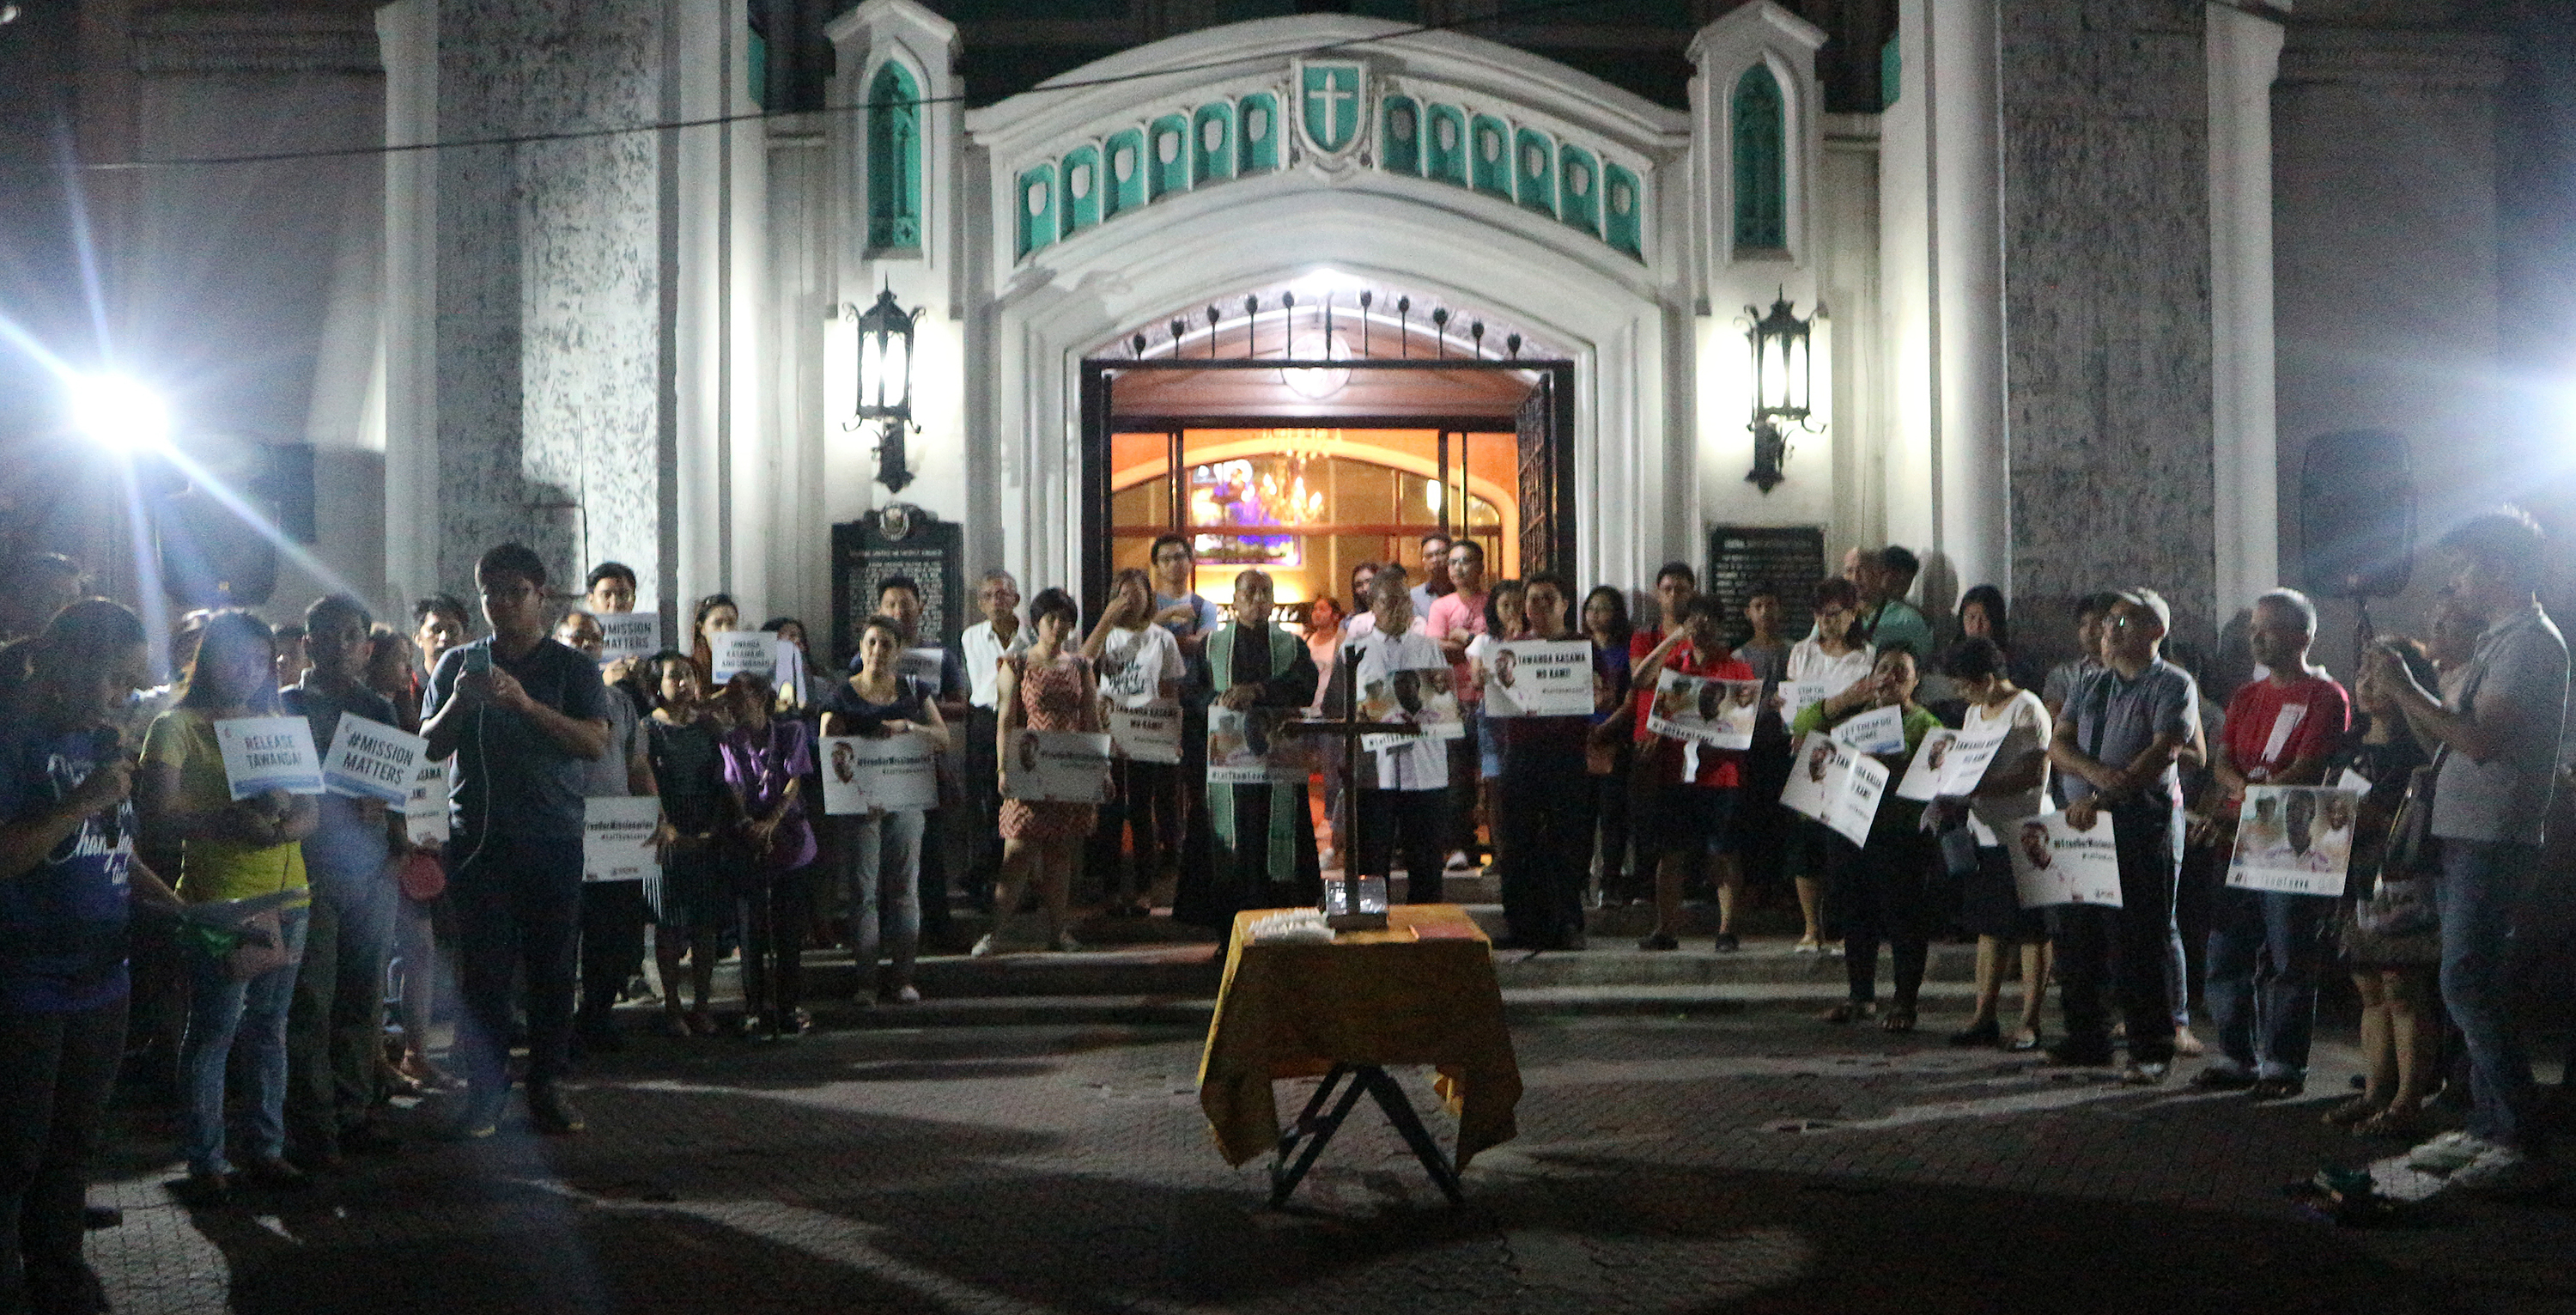 A crowd holds signs outside Central United Methodist Church in Manila in support of the missionaries from the United Methodist Board of Global Ministries detained by the Philippine's government. Photo courtesy of Gladys Mangiduyo, UMNS.